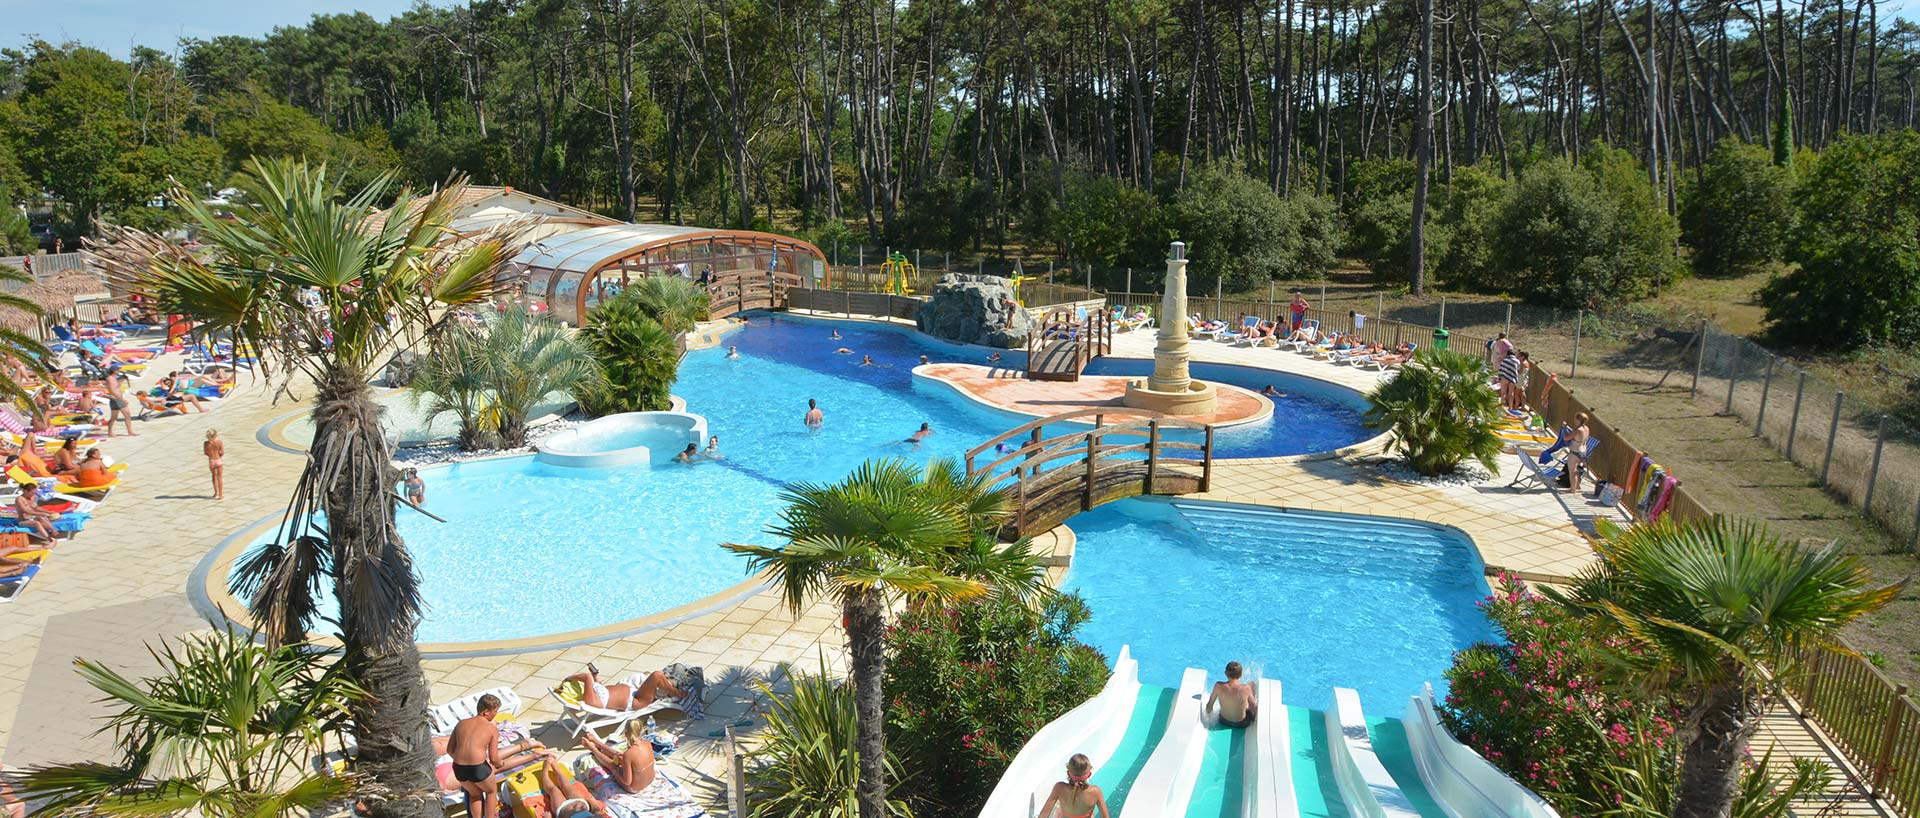 Camping soulac sur mer camping saint malo